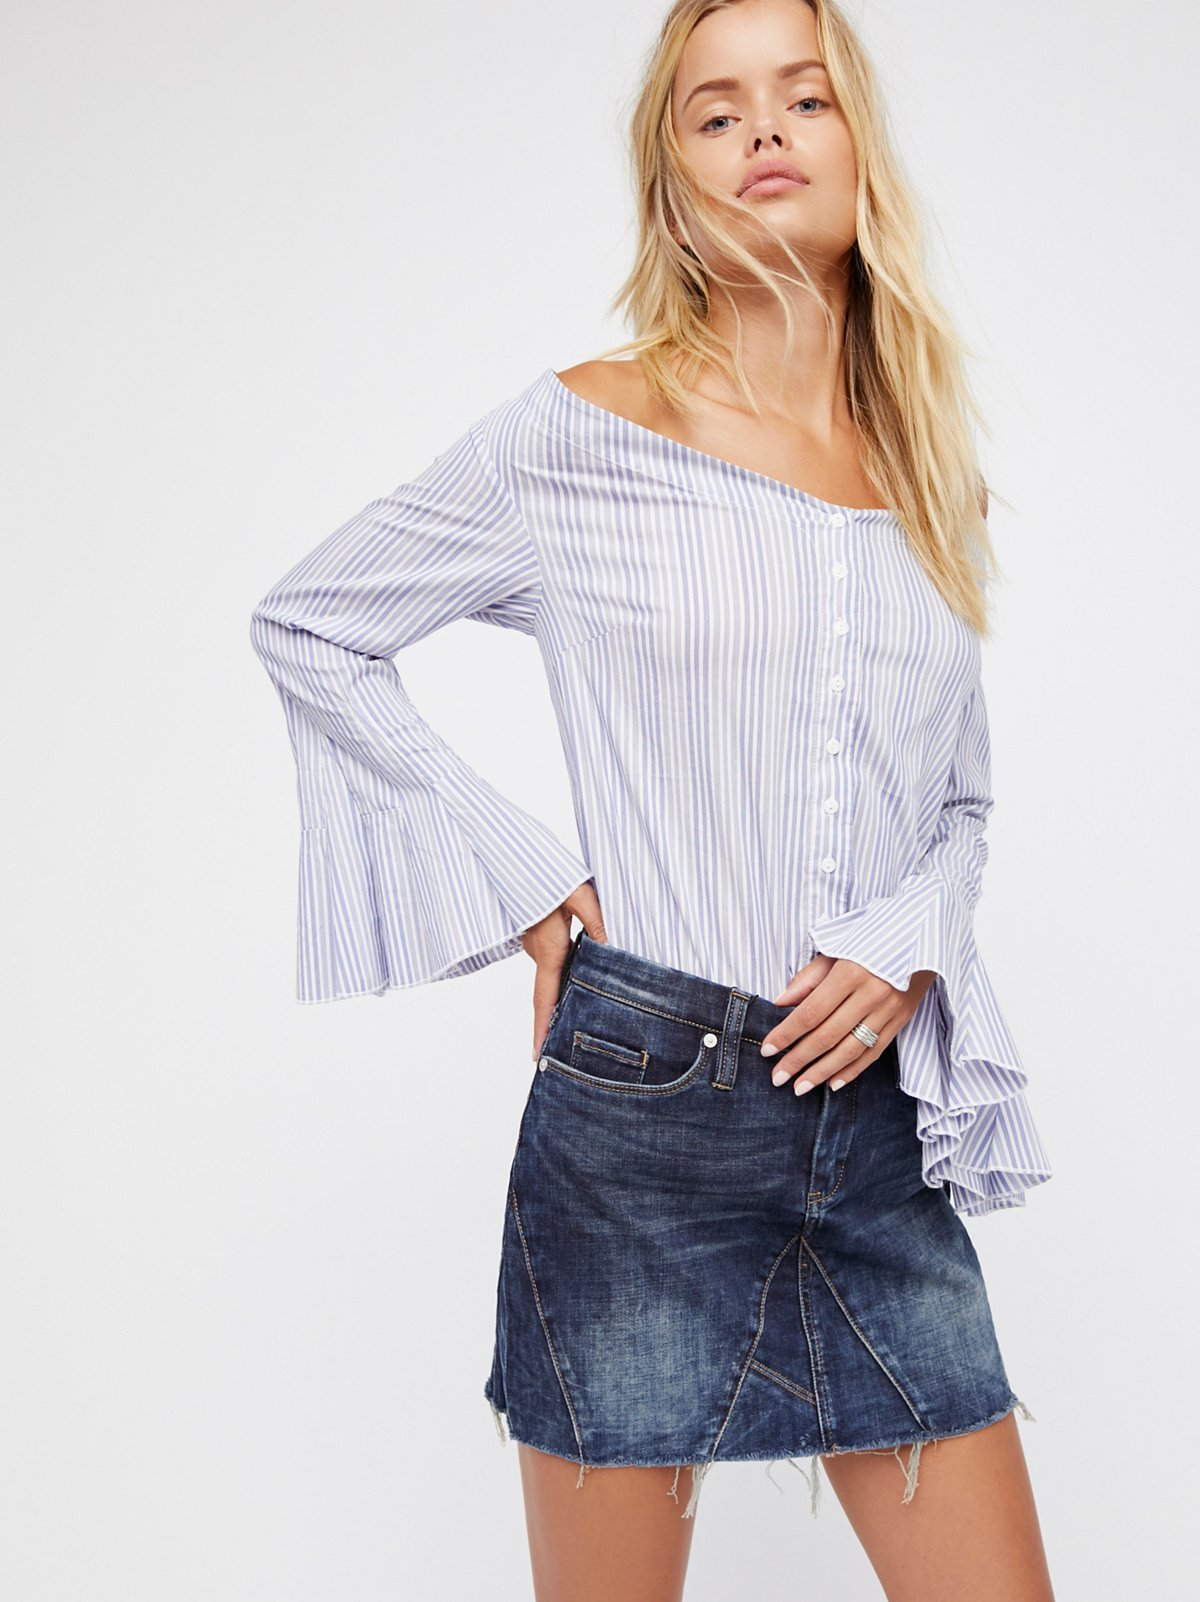 Side Hustle Denim Skirt